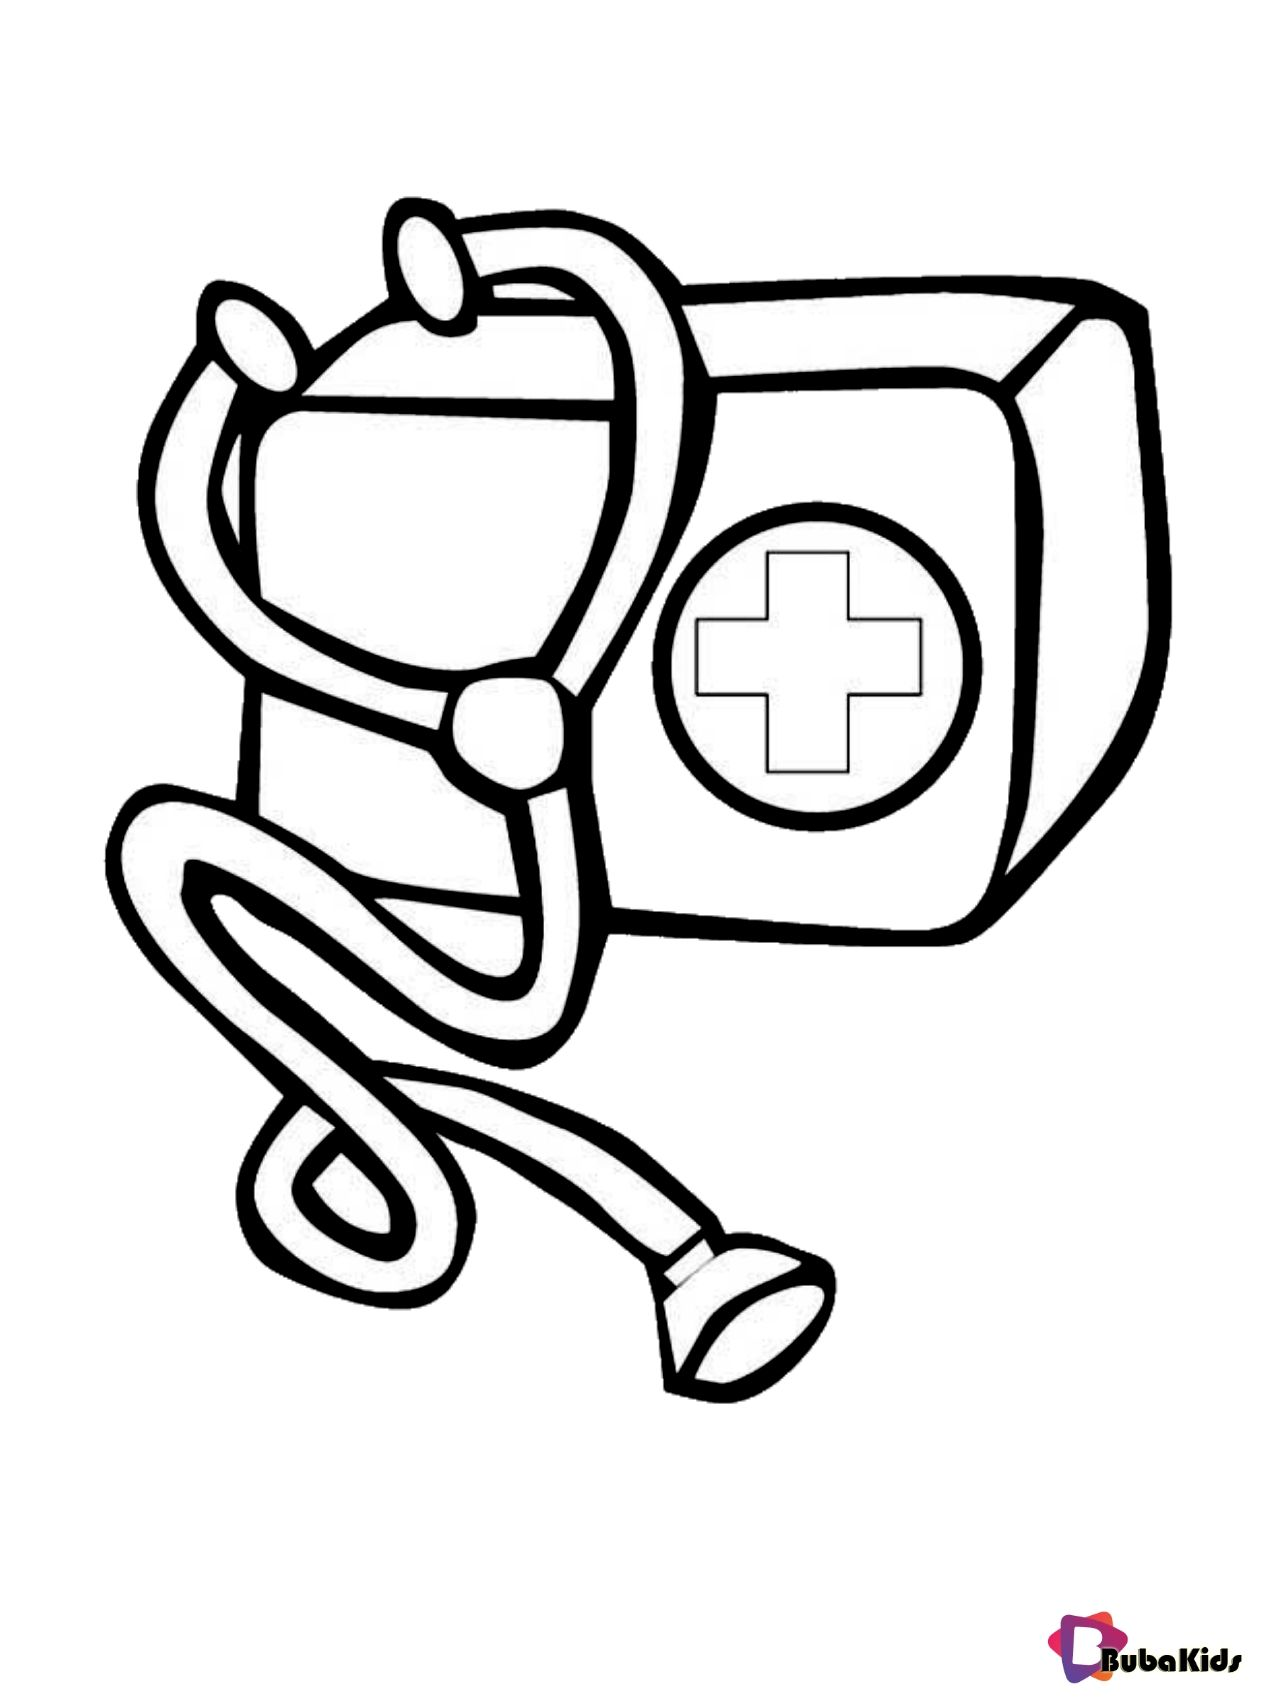 Medical Kit Bag Coloring Page Collection Of Cartoon Coloring Pages For Teenage Printable That You Can Downlo In 2020 Coloring Pages Cartoon Coloring Pages Medical Bag